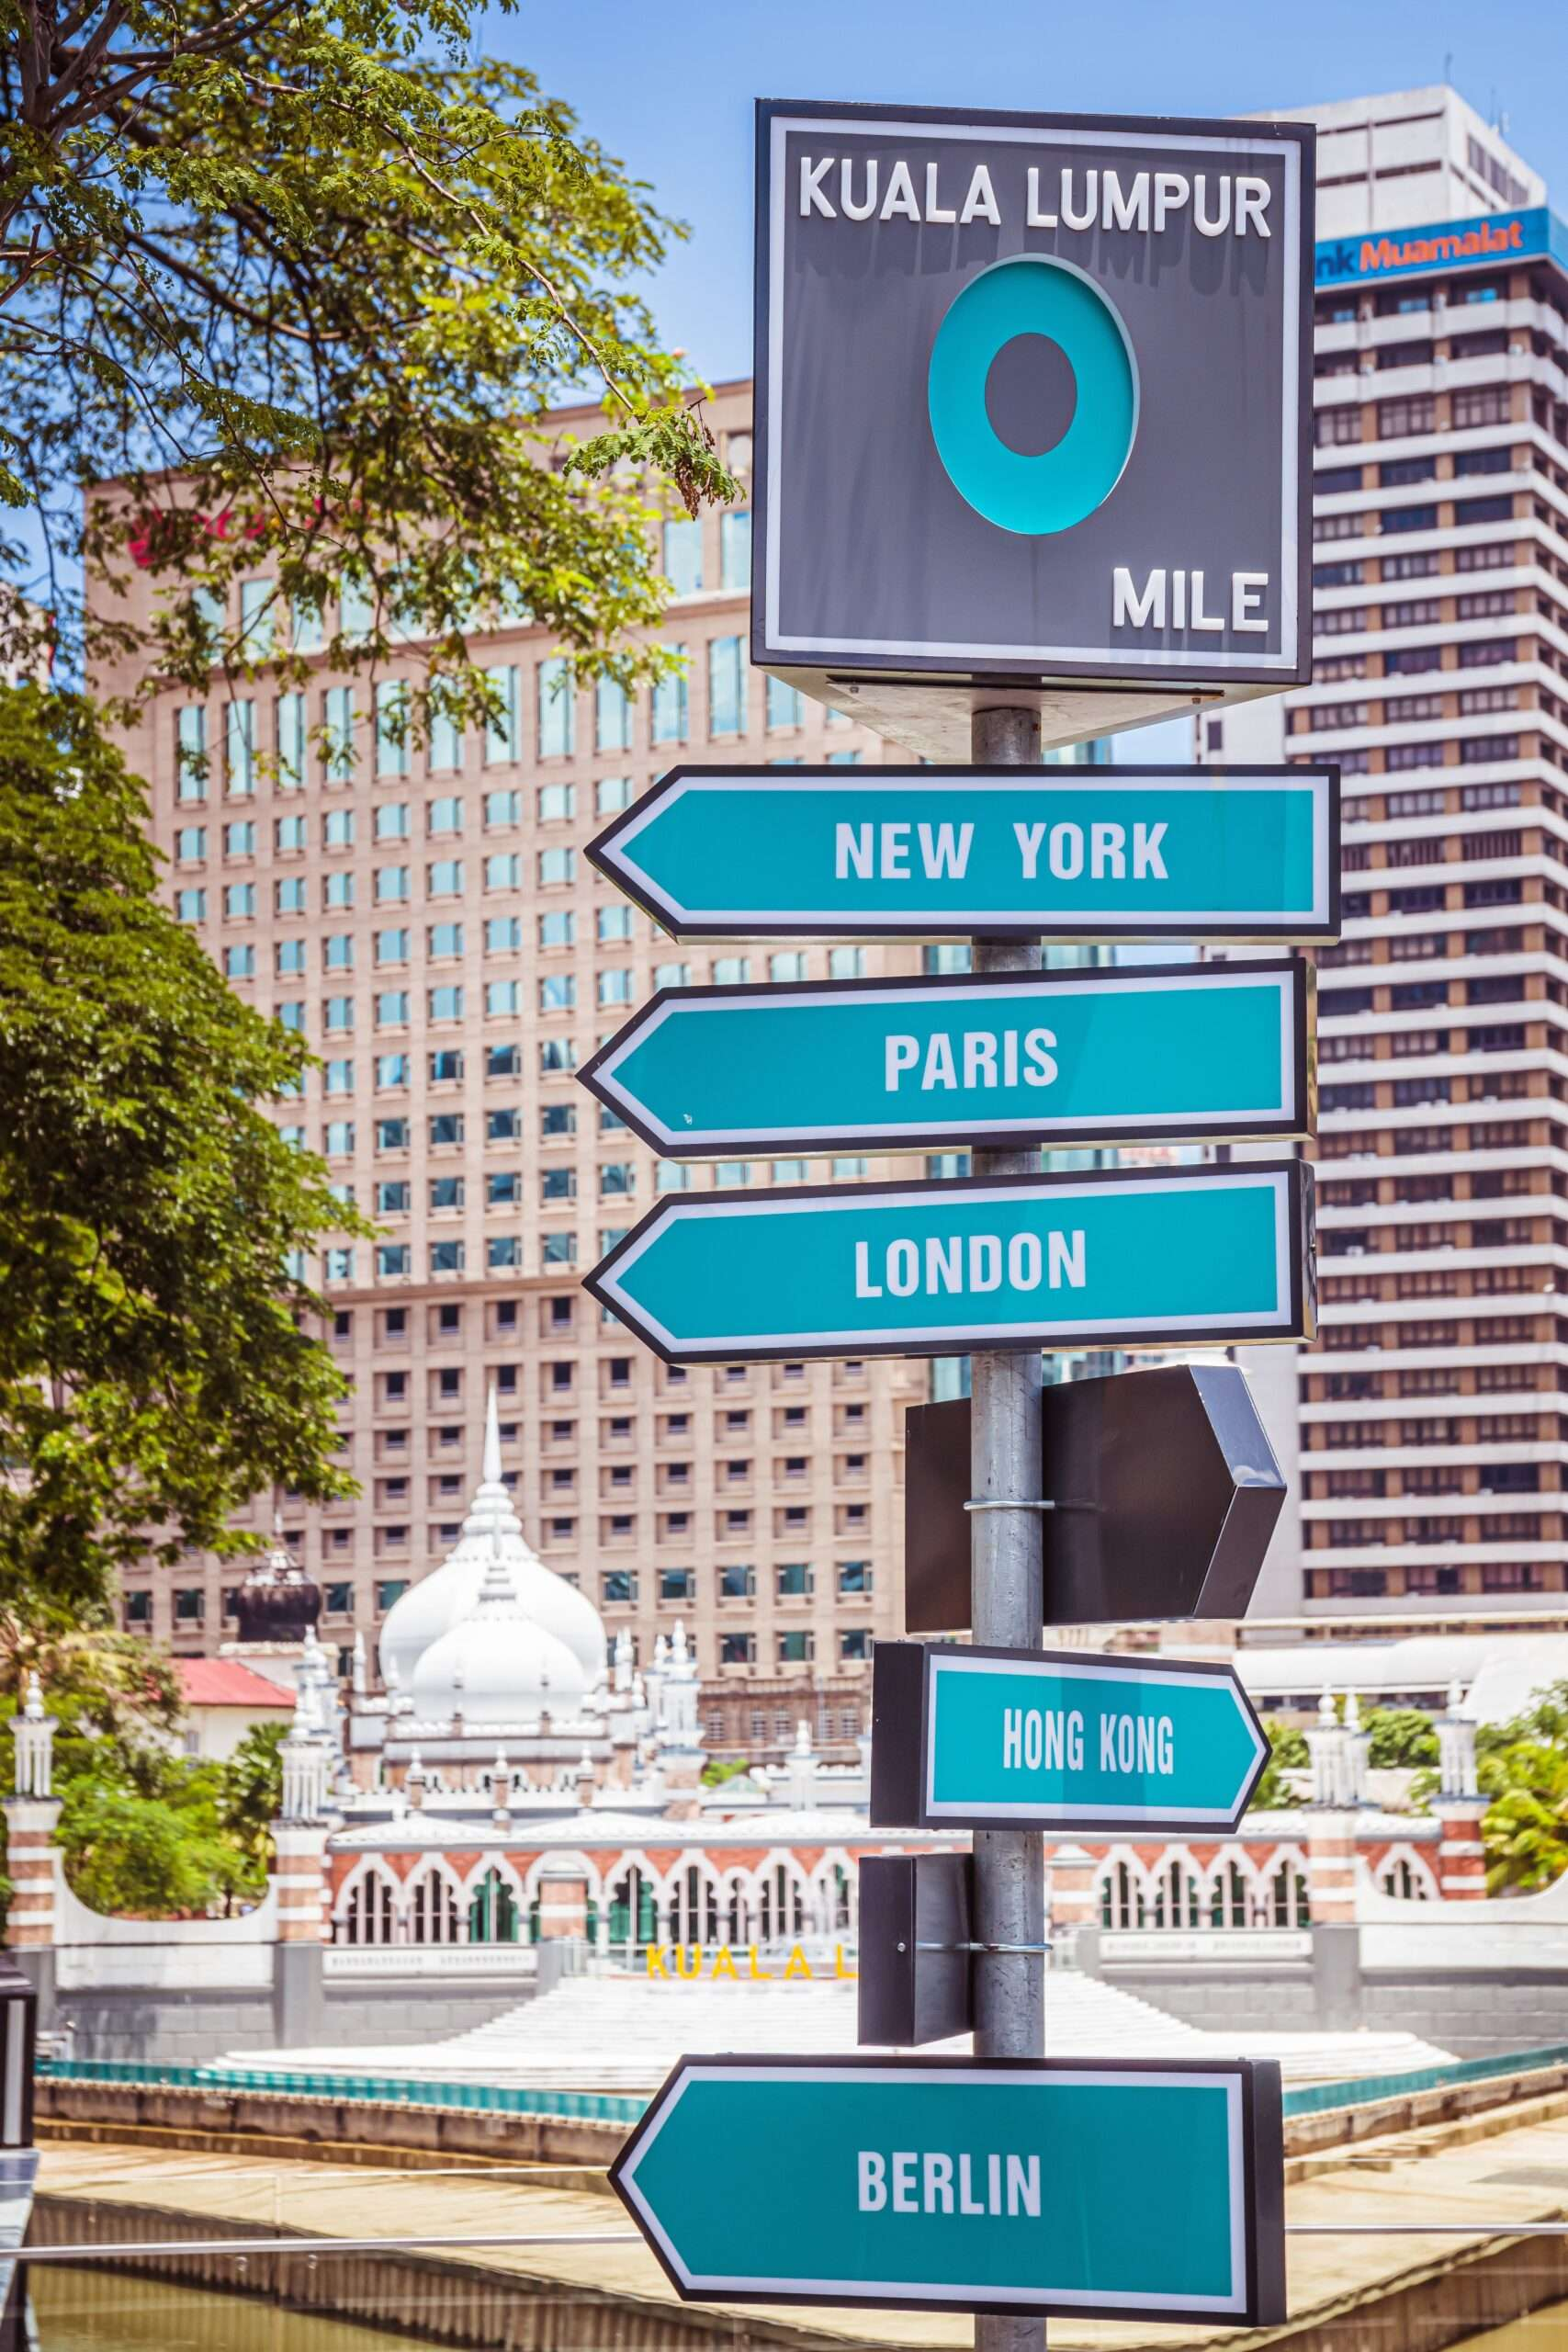 sign showing distance to other cities, in Kuala Lumpur